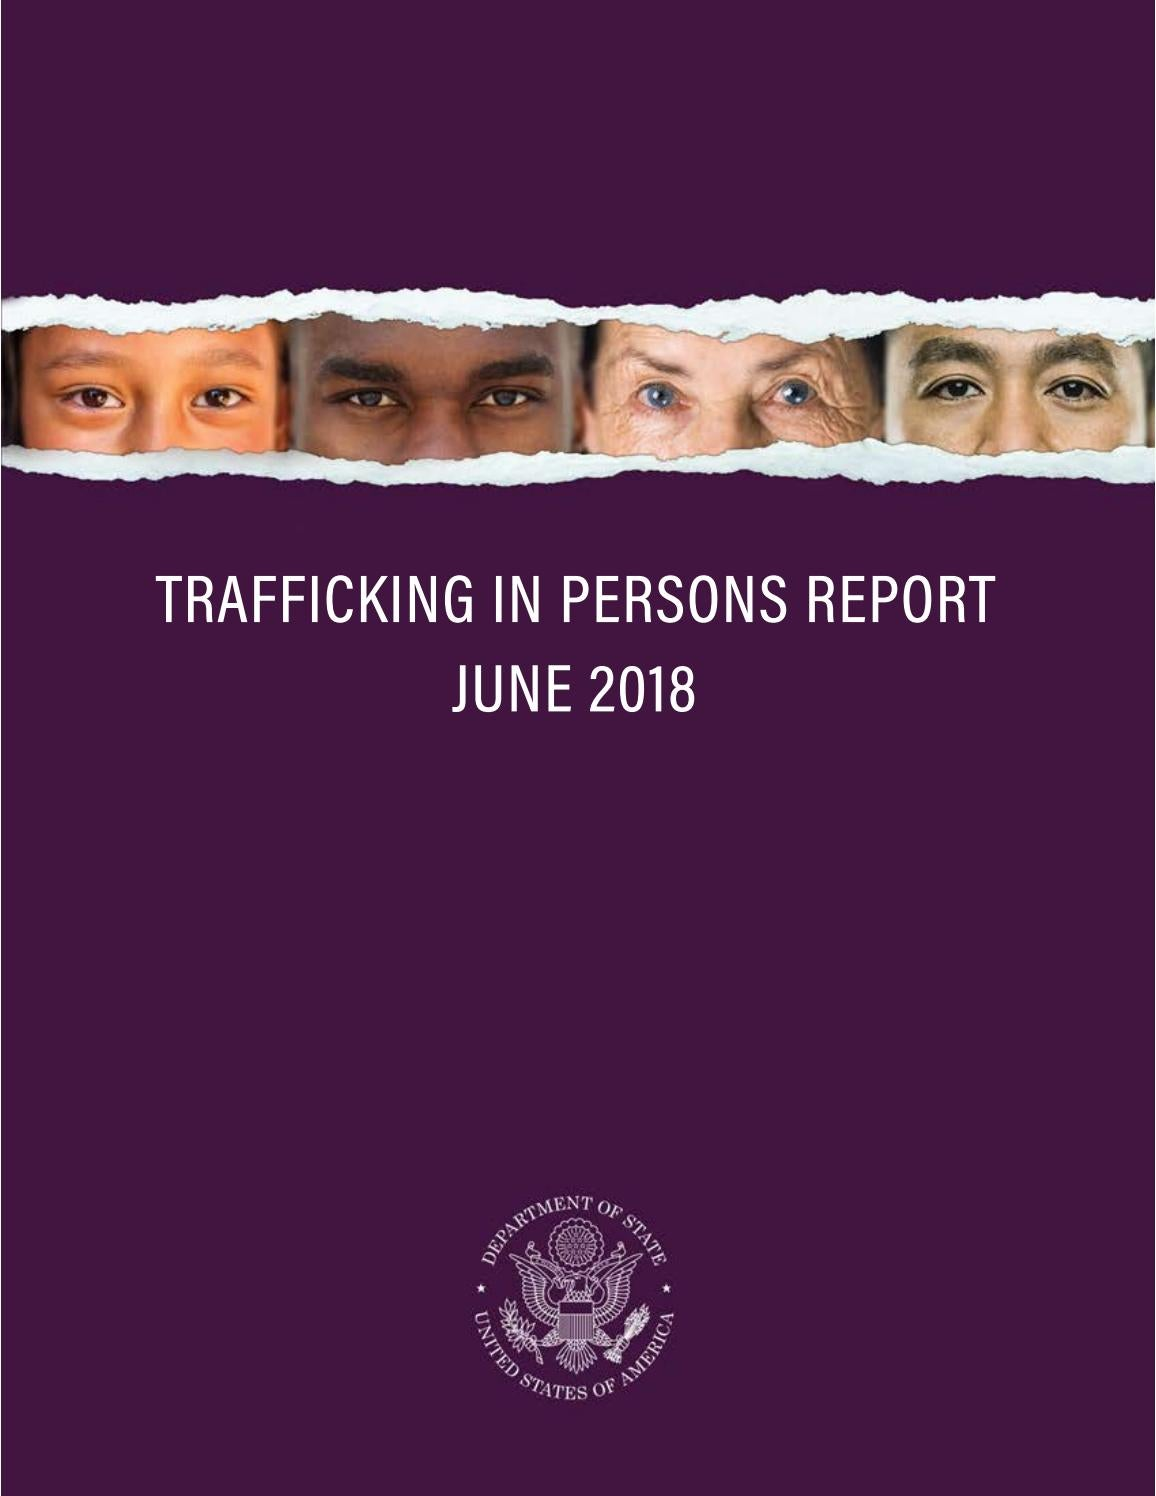 2018 Trafficking in Persons Report by Media Voices for